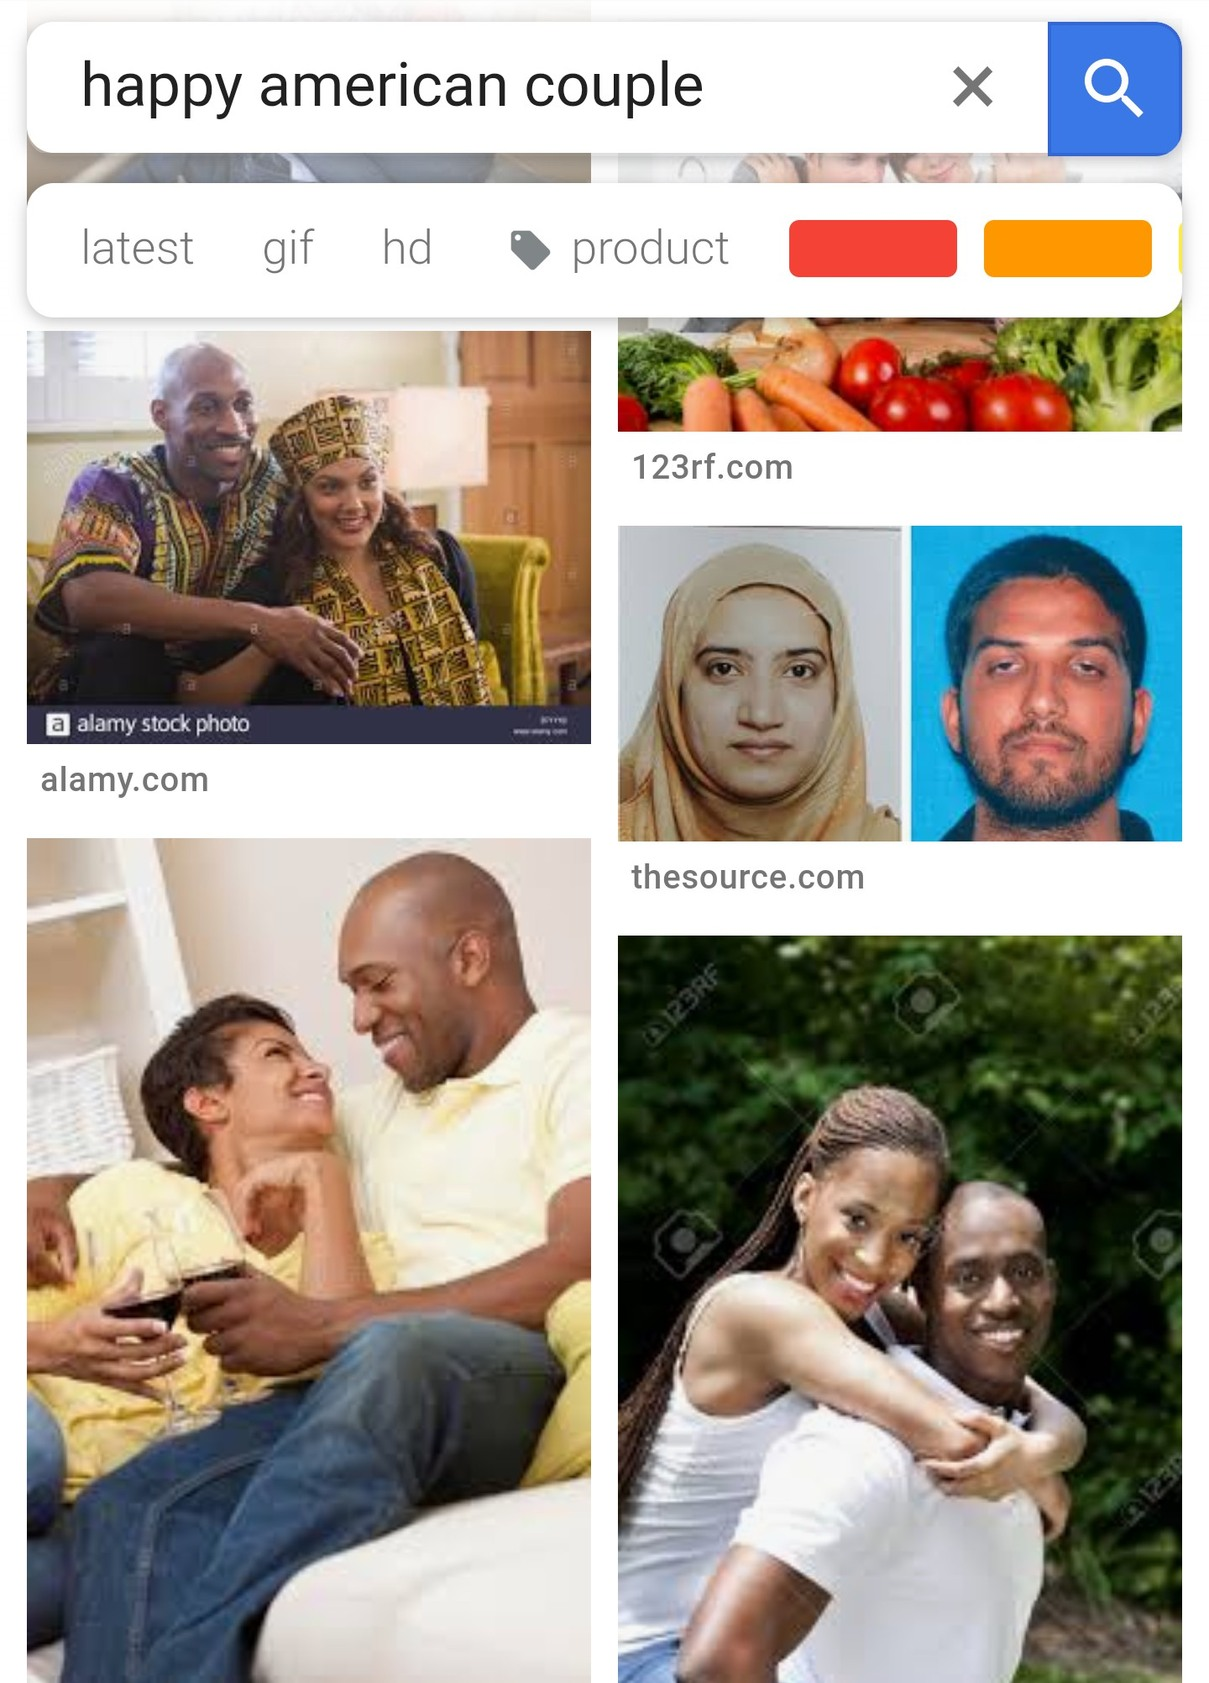 So i googled happy american couple and THIS happened. What the fuck google? - meme